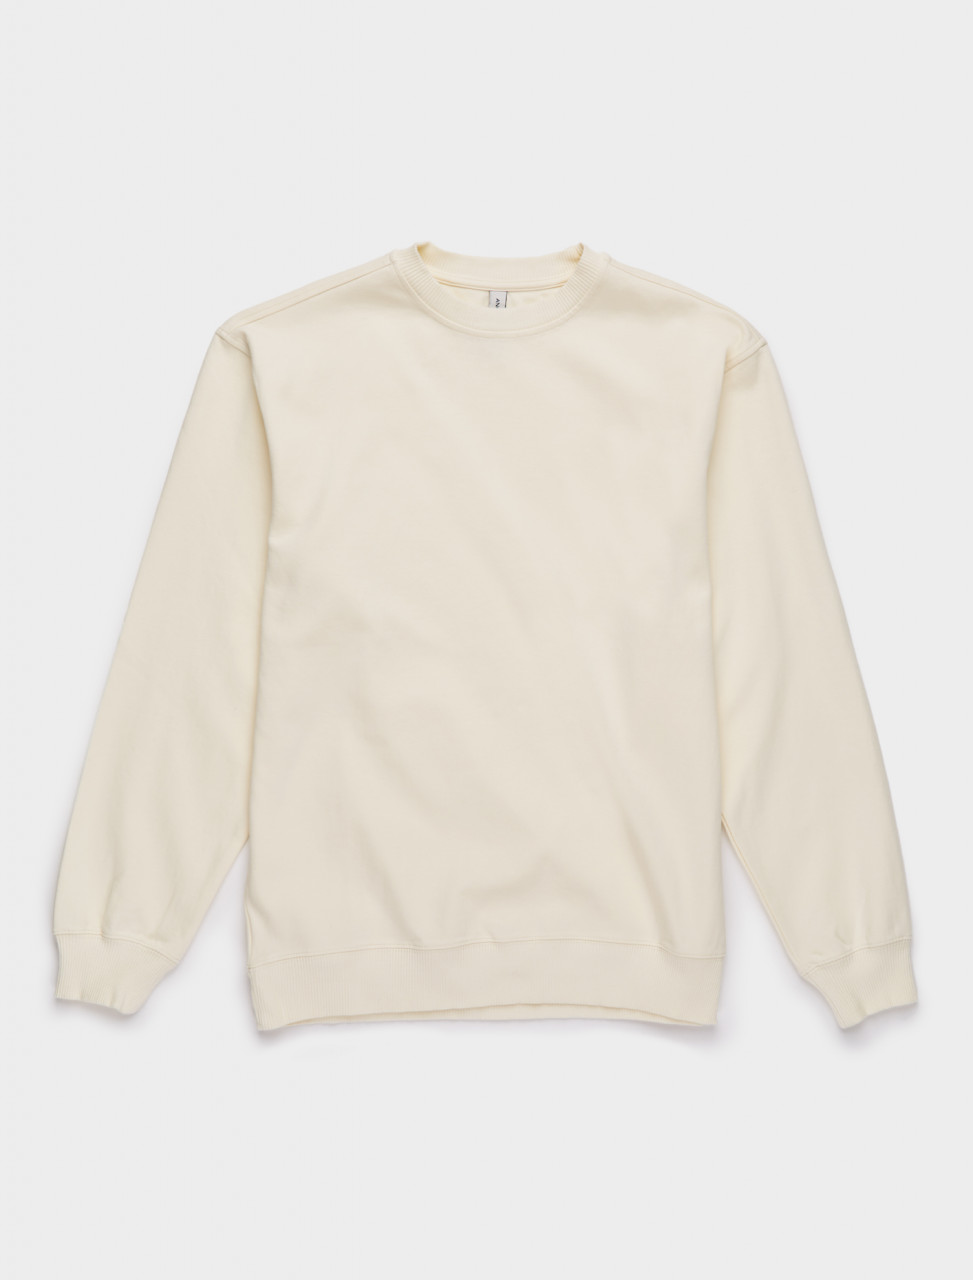 344-123464-008 ANOTHER ASPECT ANOTHER SWEATSHIRT 1.0 SWEET CORN